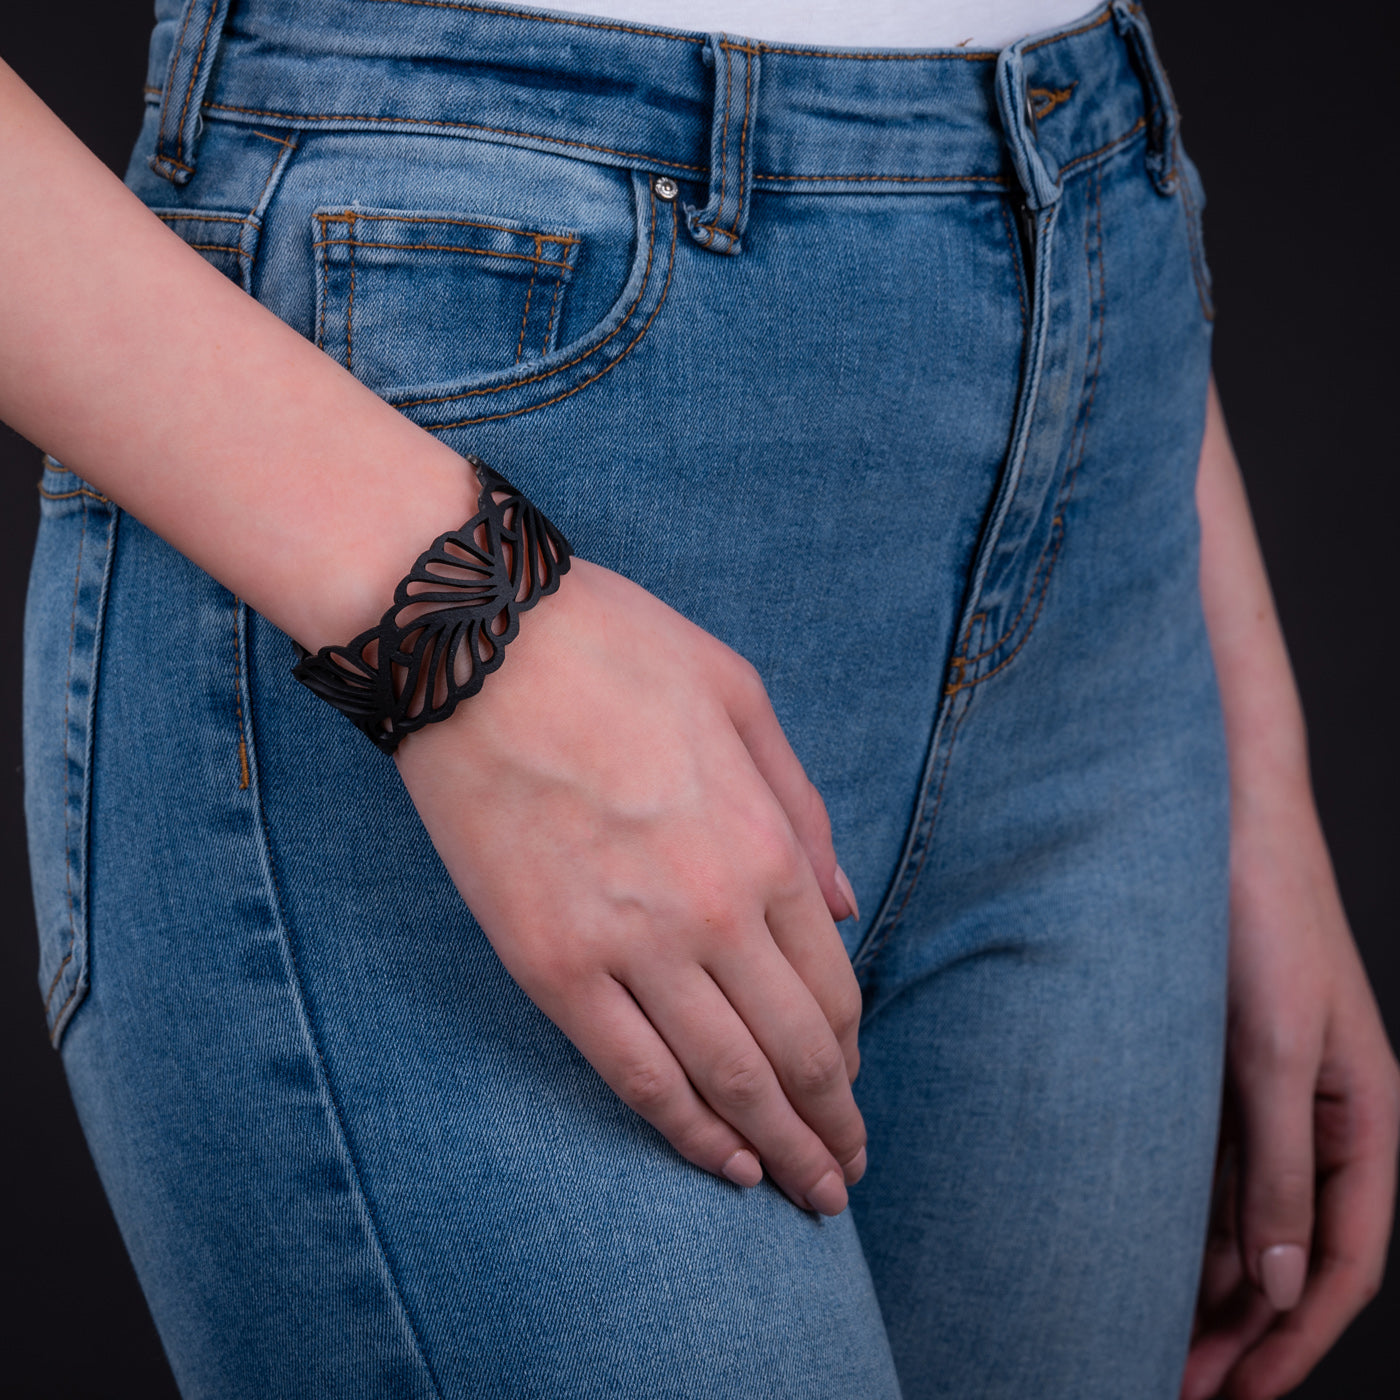 Weave Recycled Inner Tube Bracelet by Paguro Upcycle